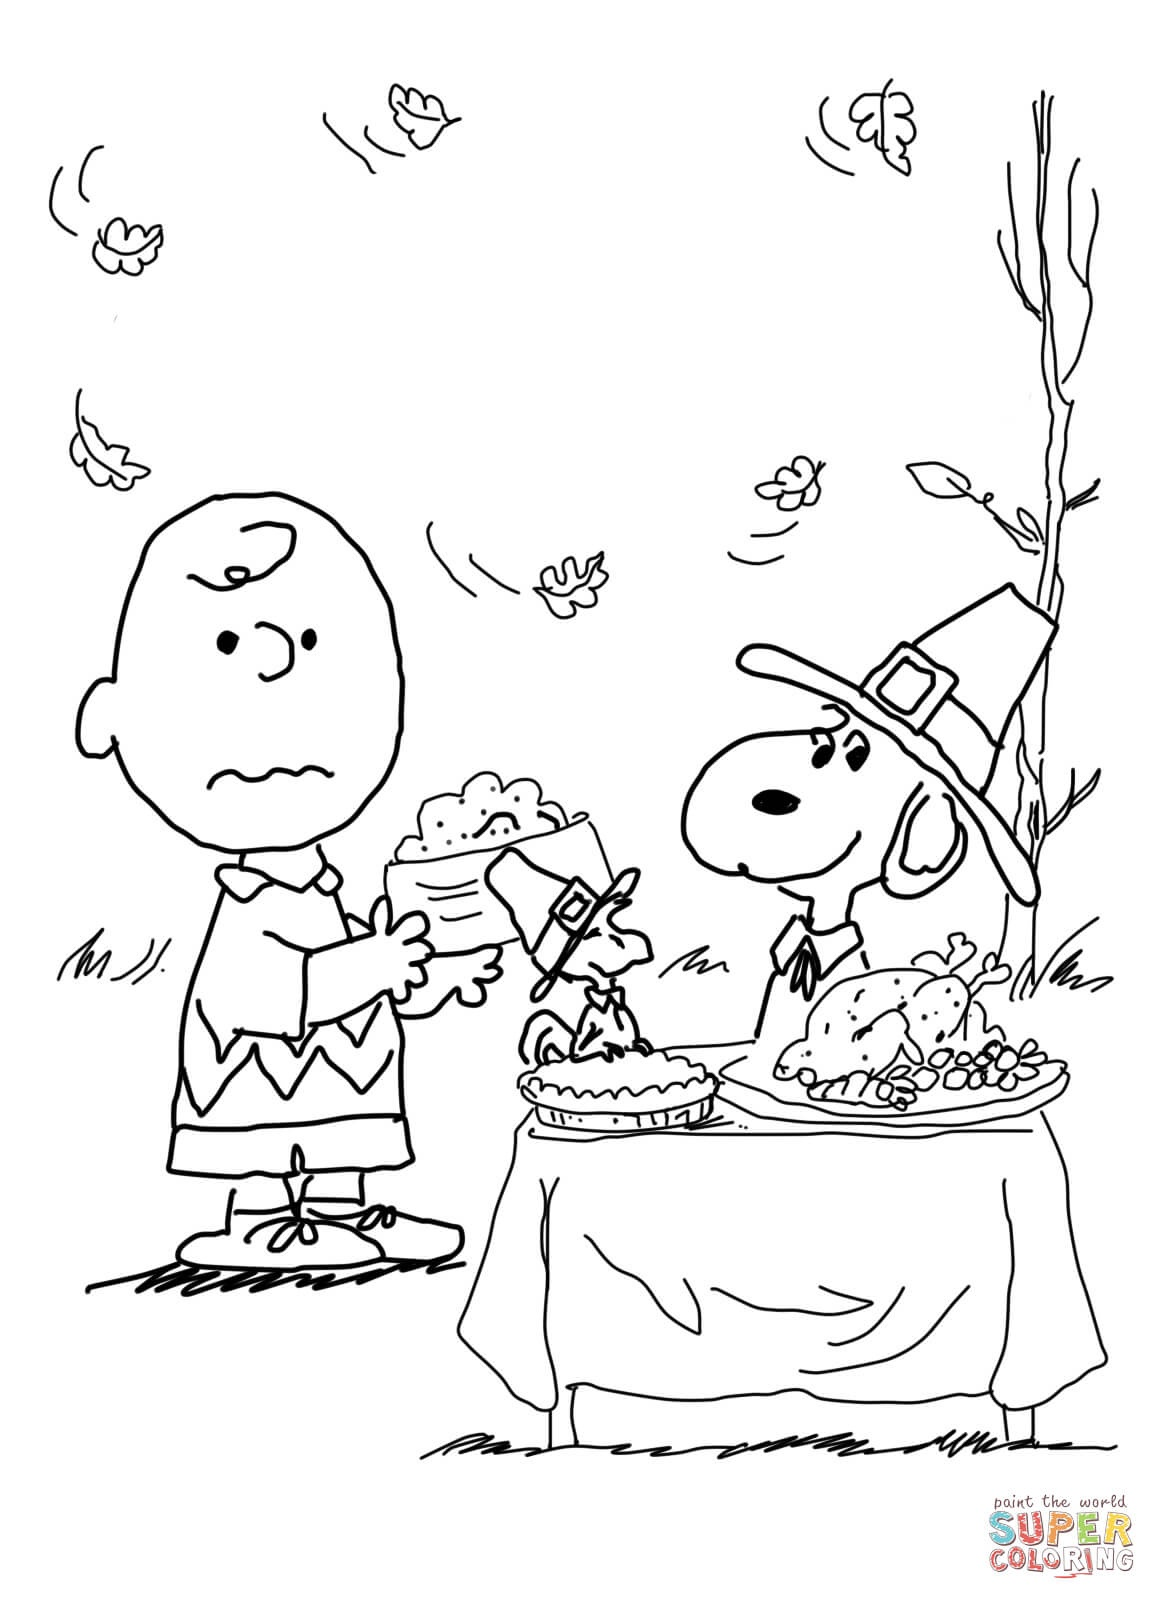 Charlie Brown Thanksgiving Coloring Page   Free Printable Coloring Pages - Free Printable Charlie Brown Halloween Coloring Pages